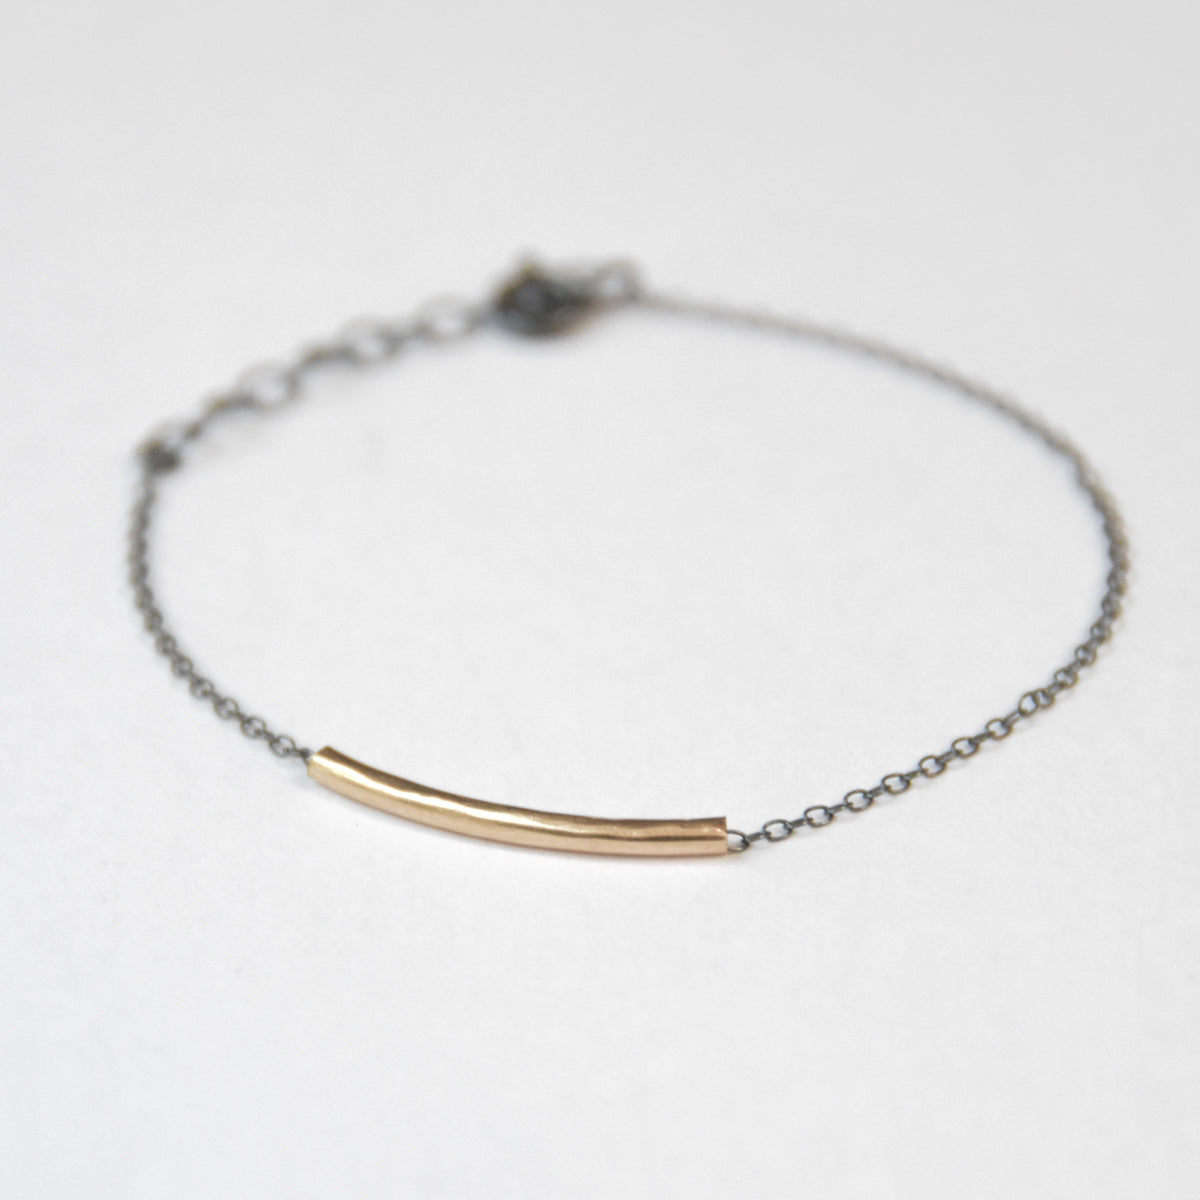 Space Tunnel Bracelet - 14K Yellow Gold-Filled